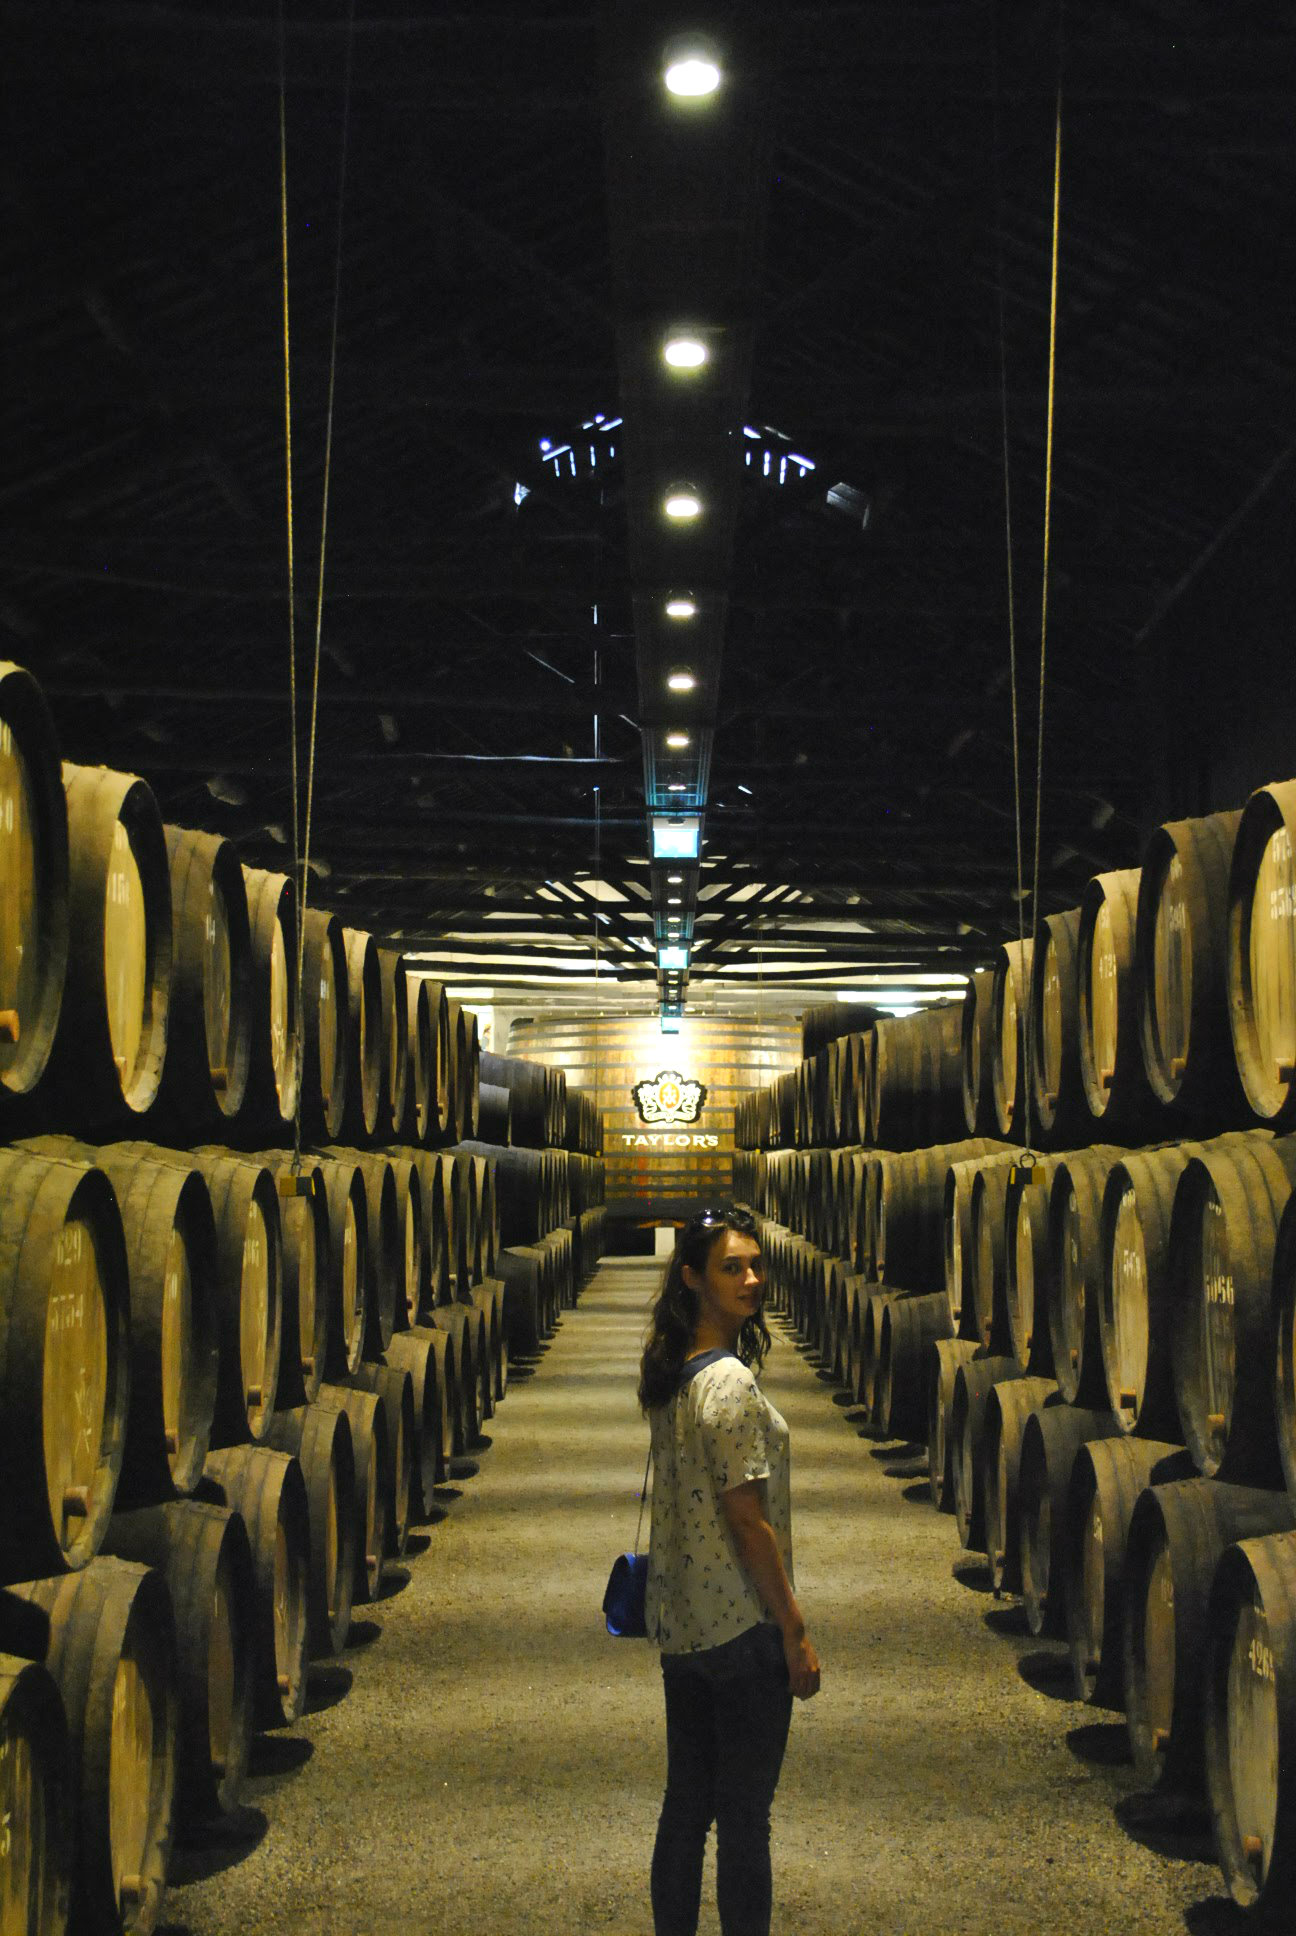 Port Wine Barrels in Vila Nova de Gaia. Want to try some? Read the blog post to know more.